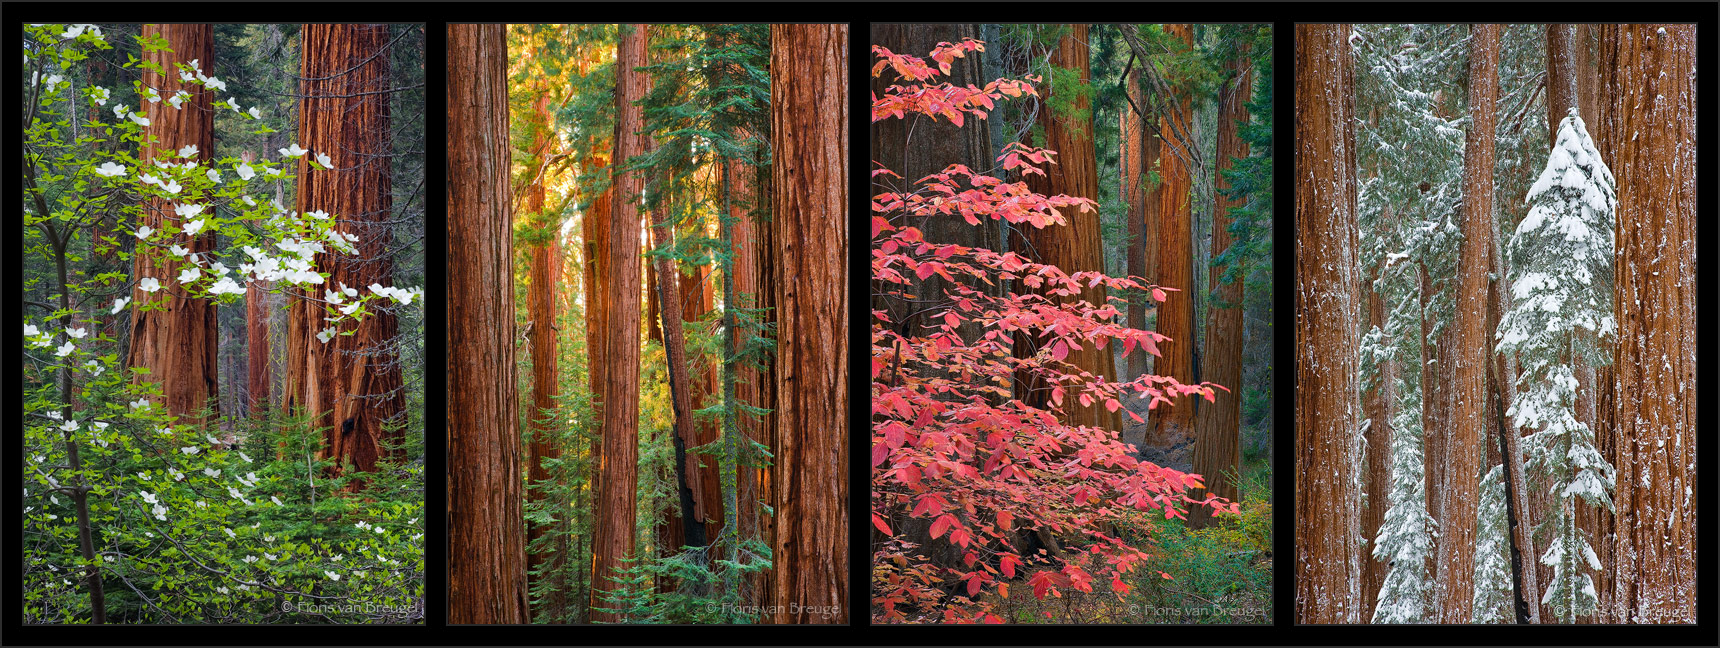 Sequoias Four Seasons, Sequoia National Park, California, dogwoods, spring, fall, summer, winter, photo